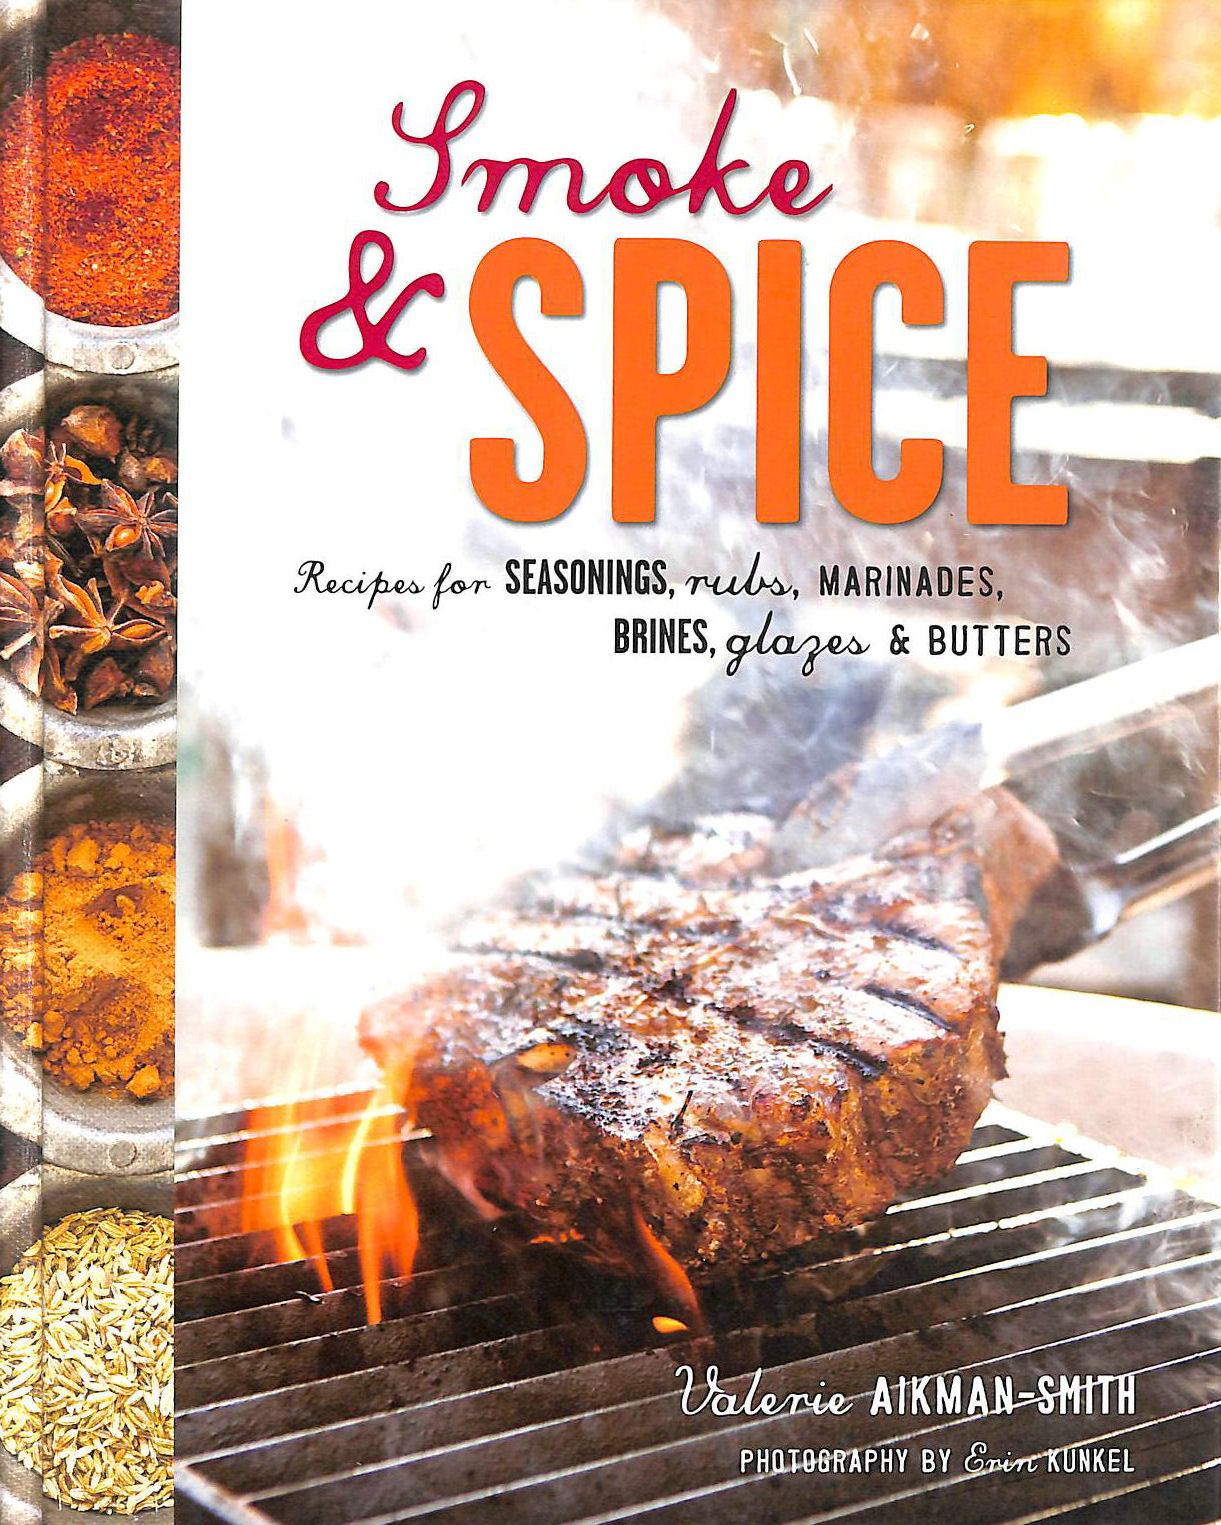 Image for Smoke and Spice: Recipes for seasonings, rubs, marinades, brines, glazes and butters